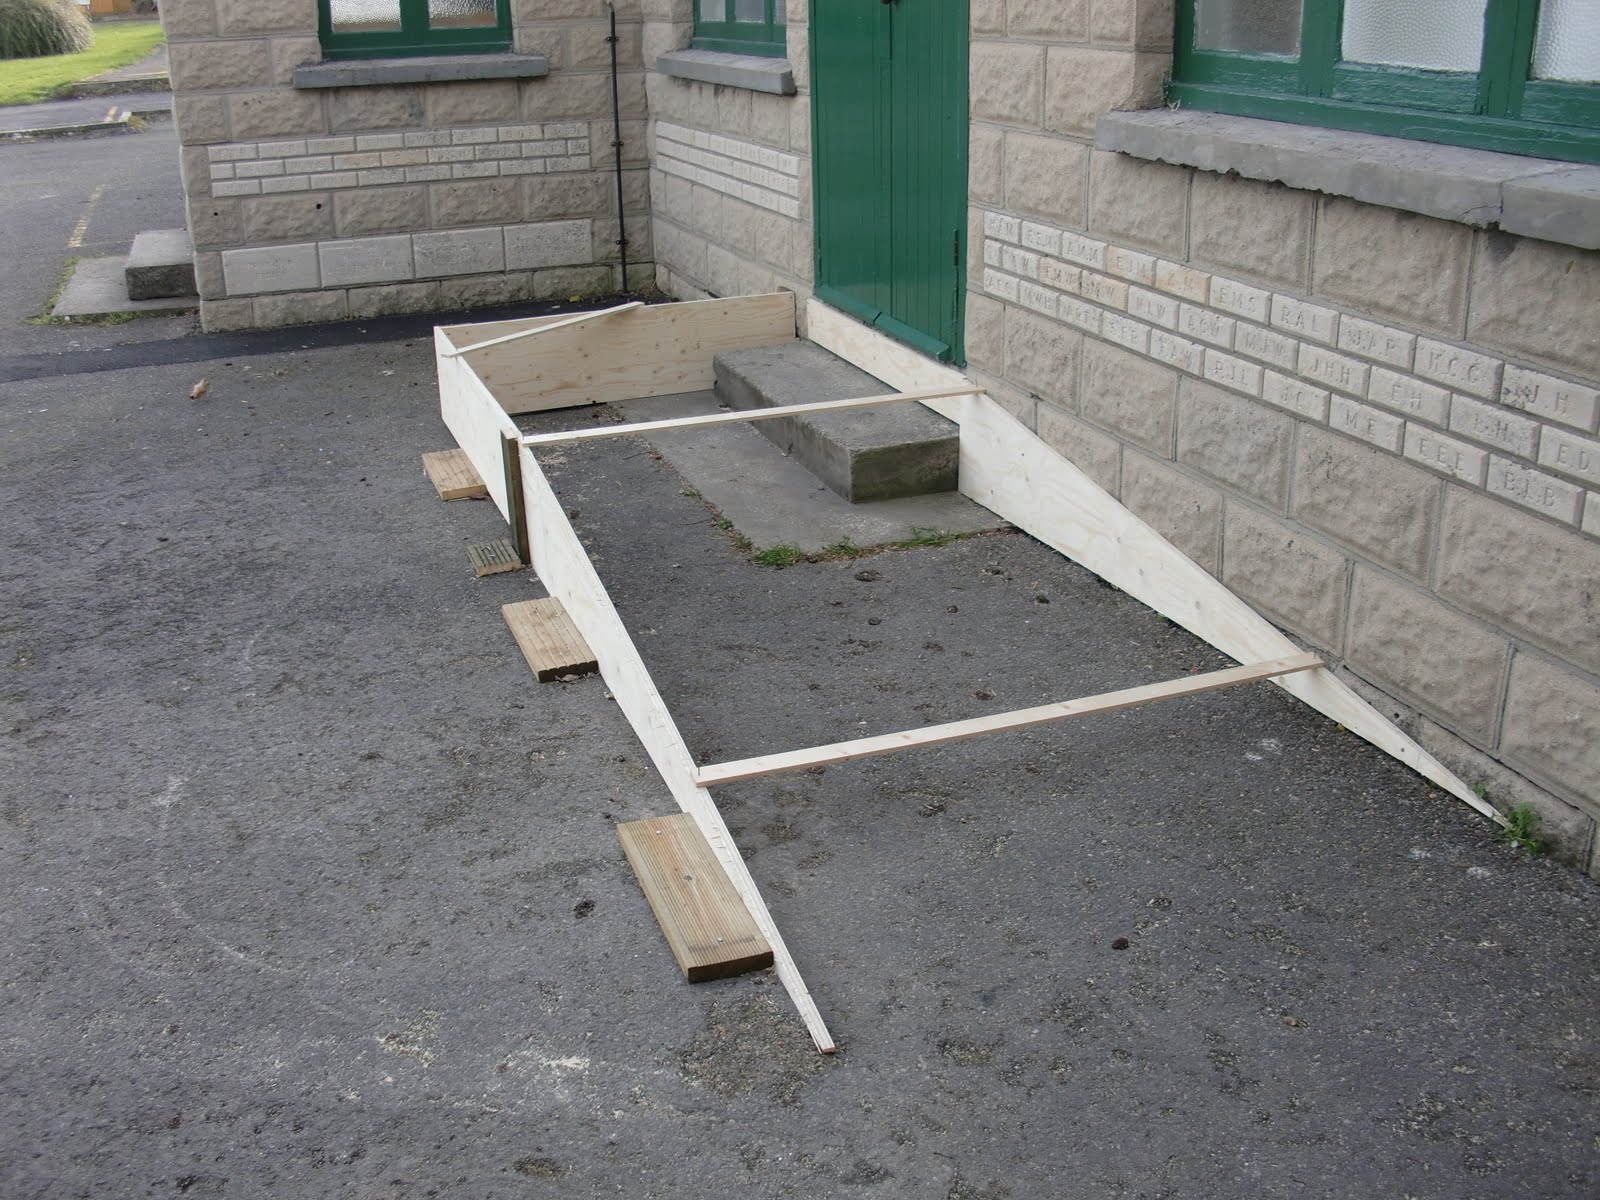 calley memorial hall chiseldon disabled ramp work starts today